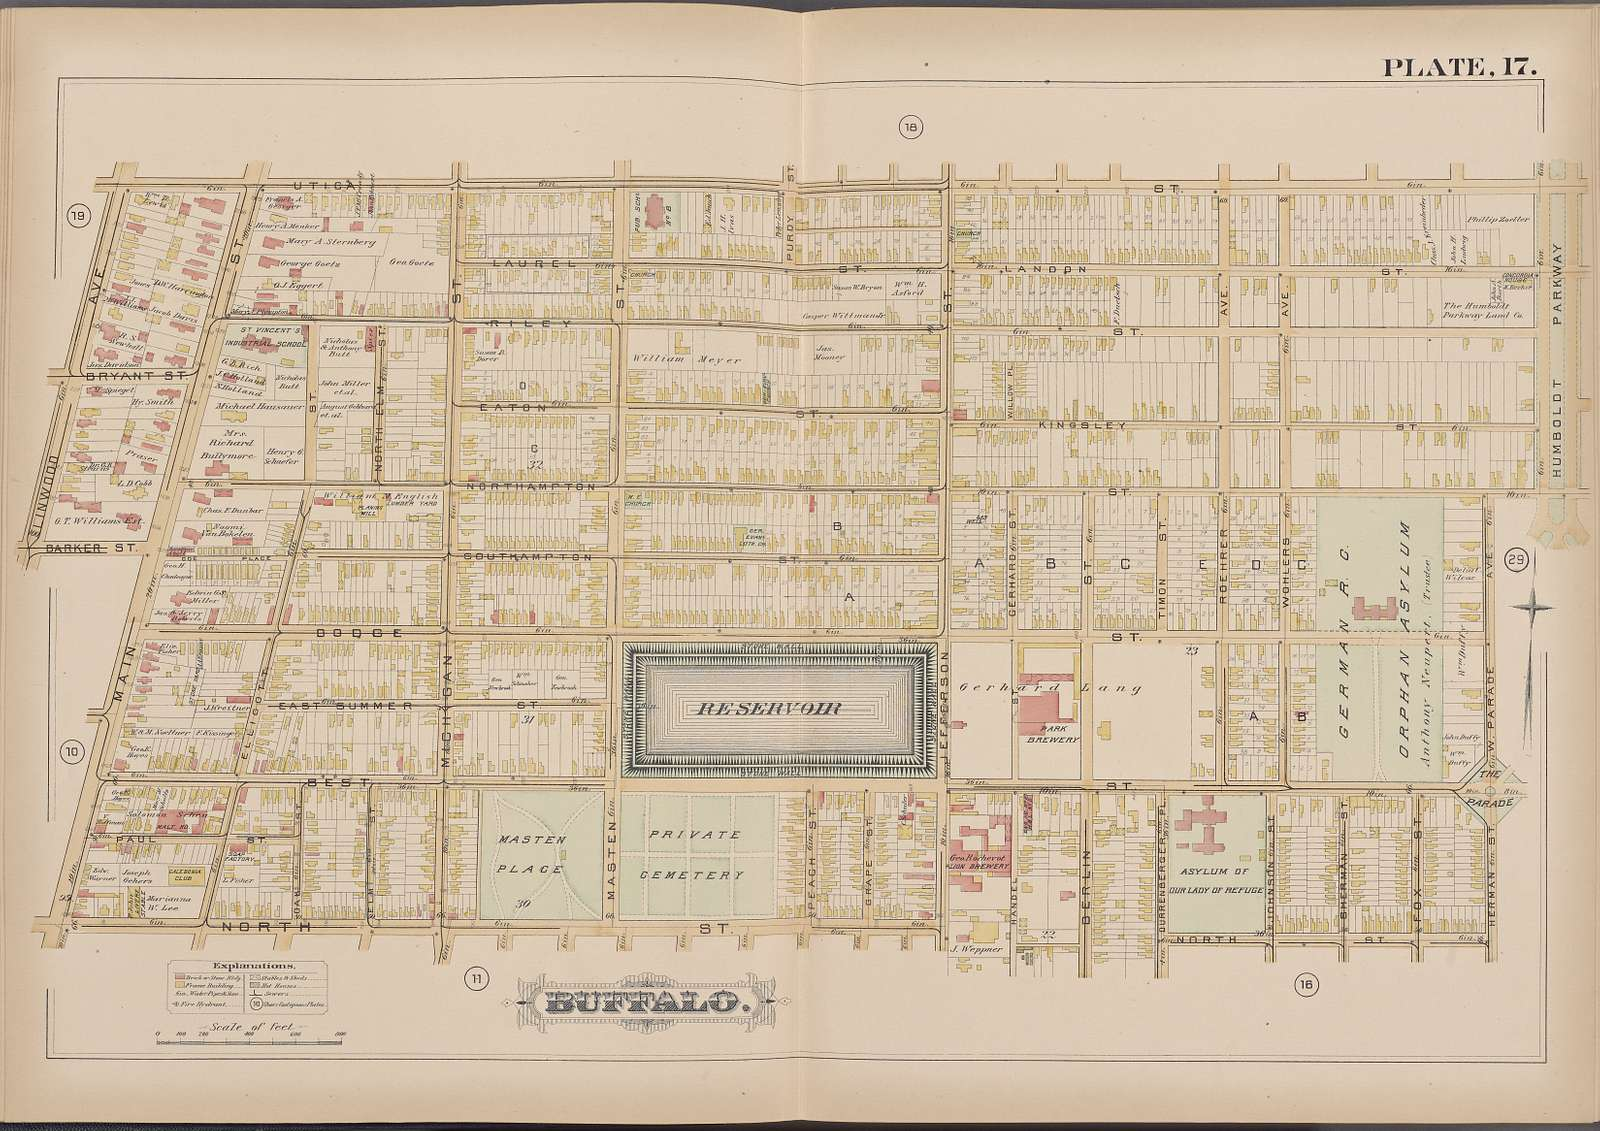 Buffalo, Double Page Plate No. 17 [Map bounded by Utica St., Herman St., North St., Main St.]